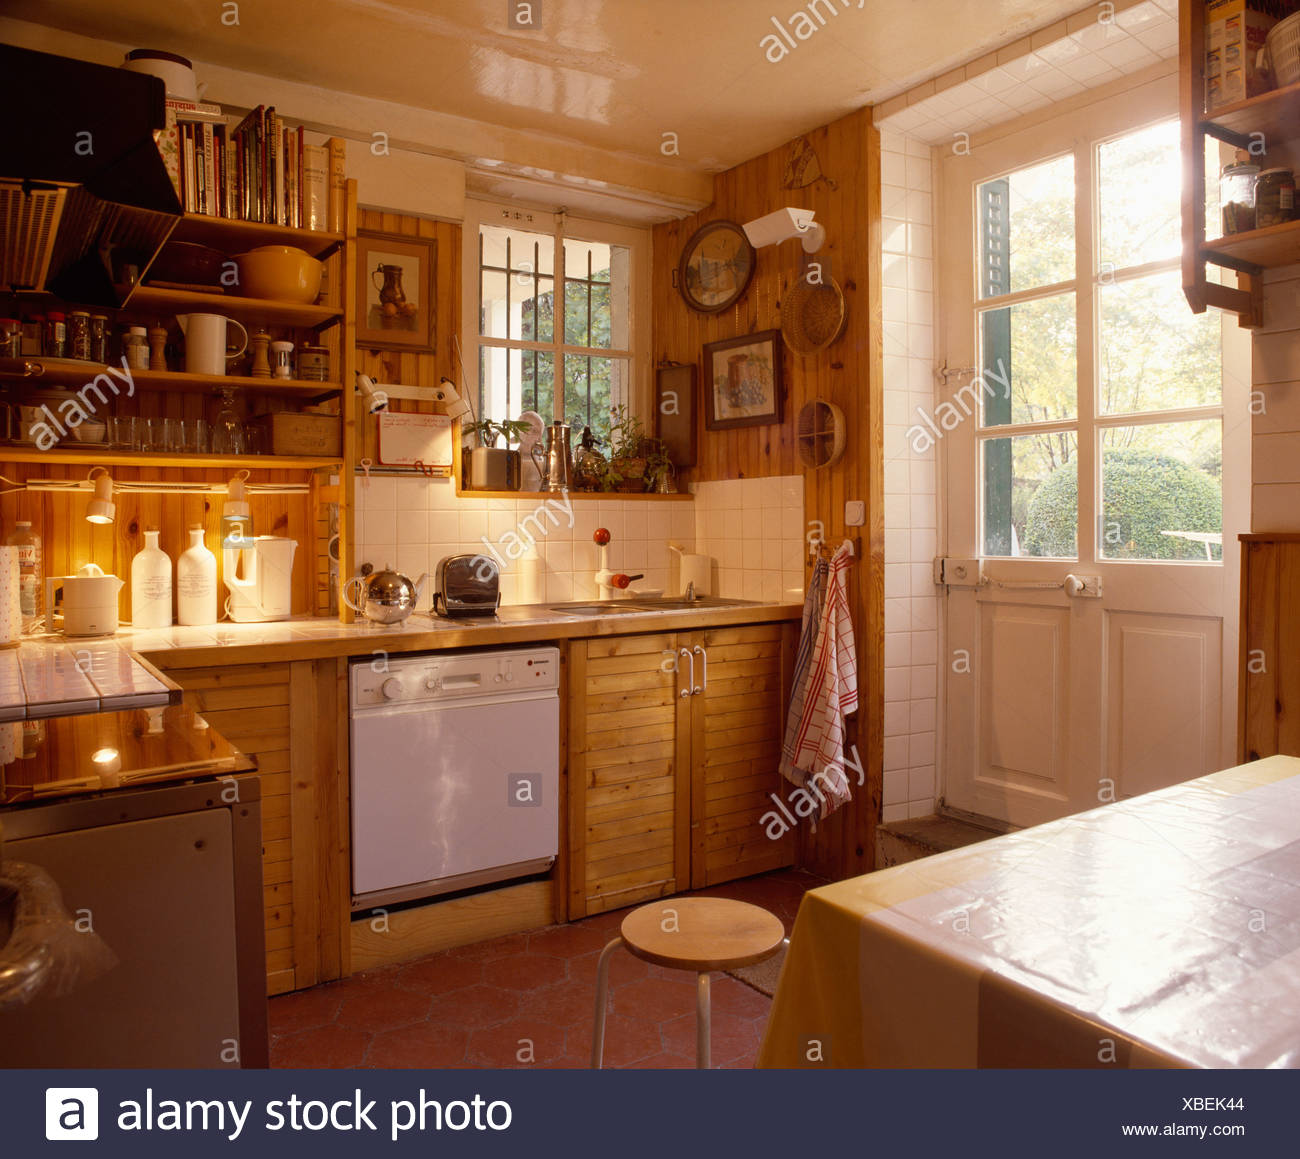 Country kitchen with dishwasher in wooden units below underlit shelves and half-glazed back door : wooden-country-kitchen - designwebi.com